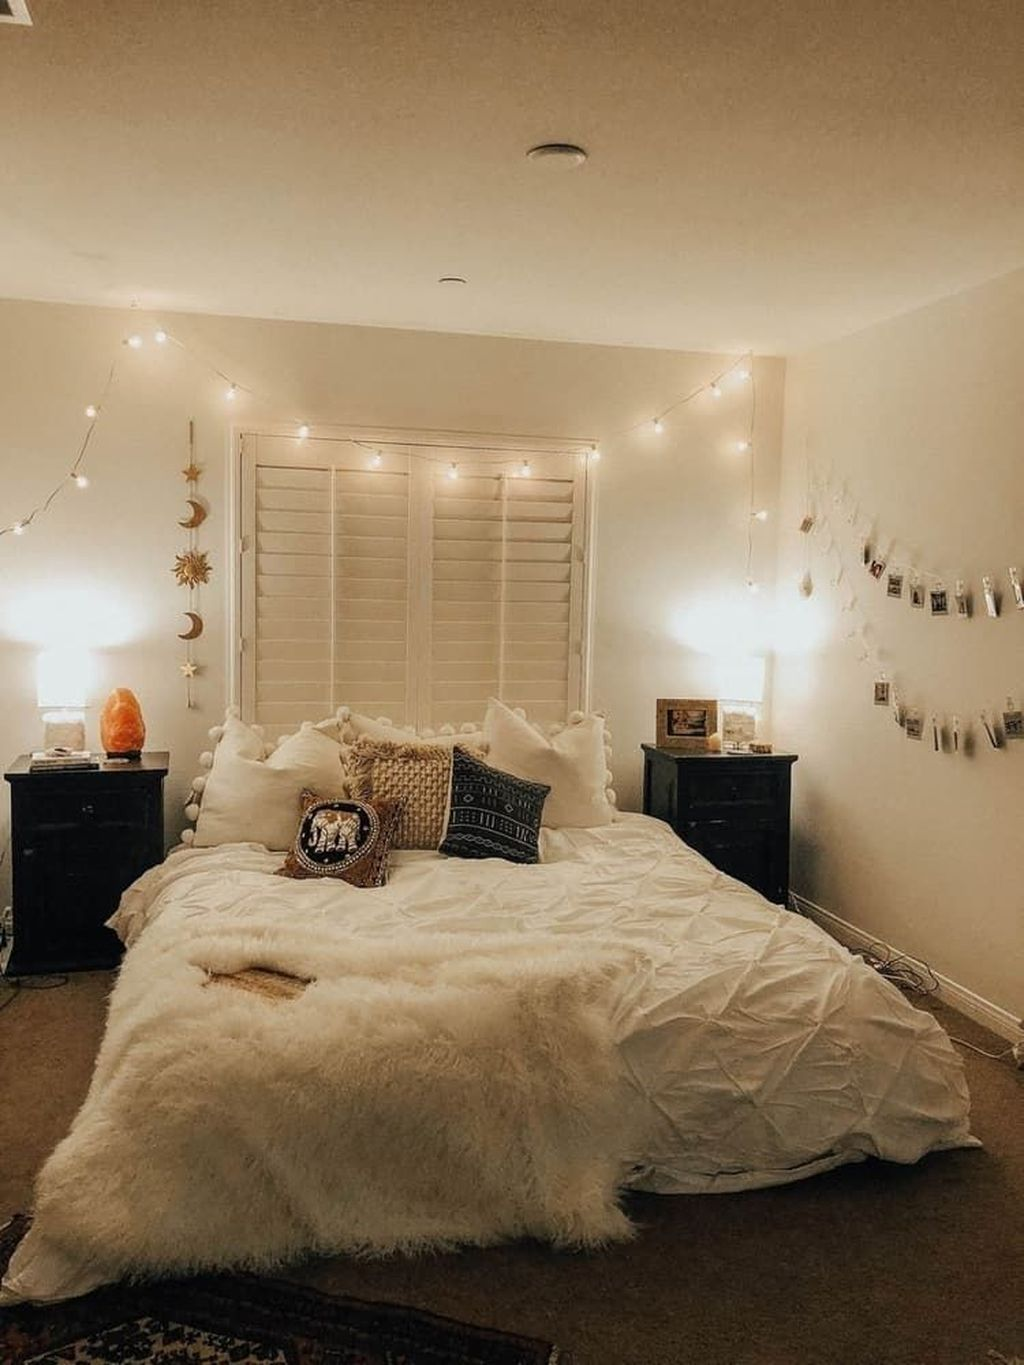 Lovely Moon Decor Ideas For Beautiful Home Decoration 19